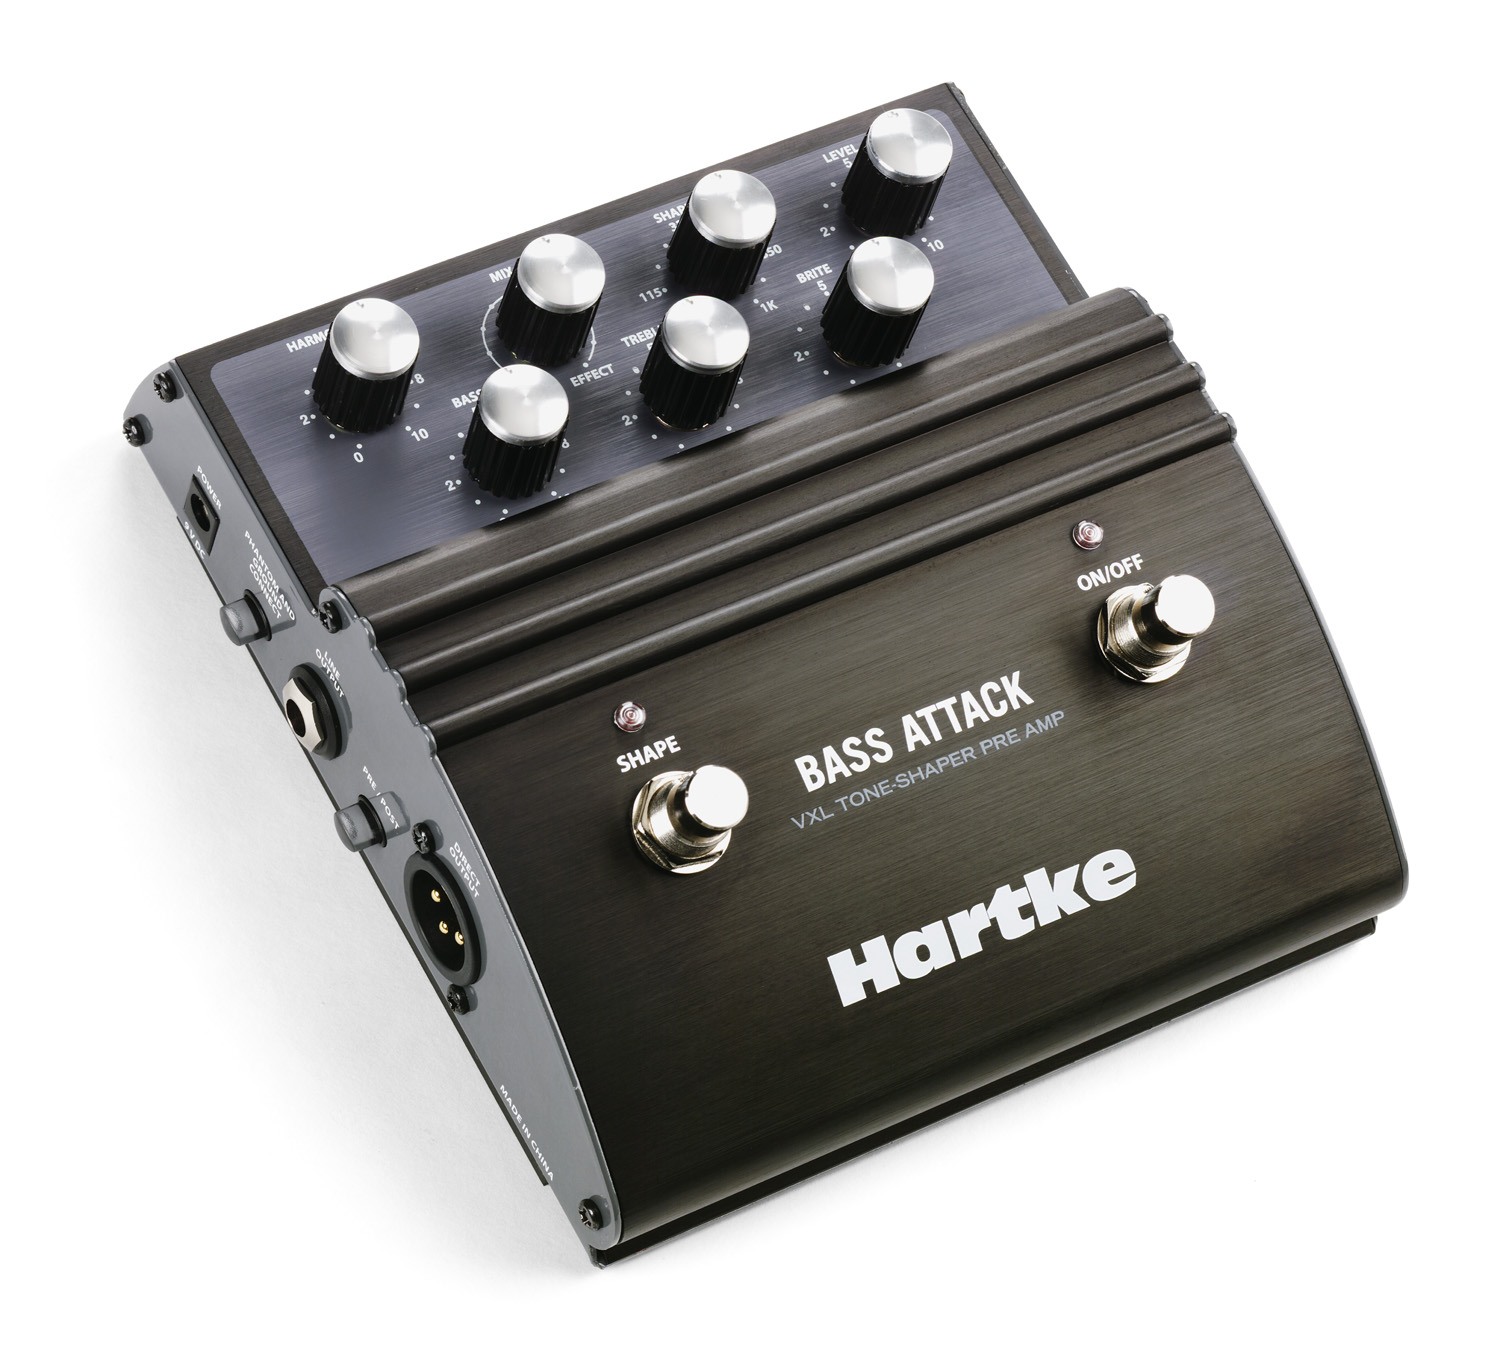 Hartke Vxl Bass Attack Inserting A Tone Control Between Preamp And Power Amp Downloads Manuals